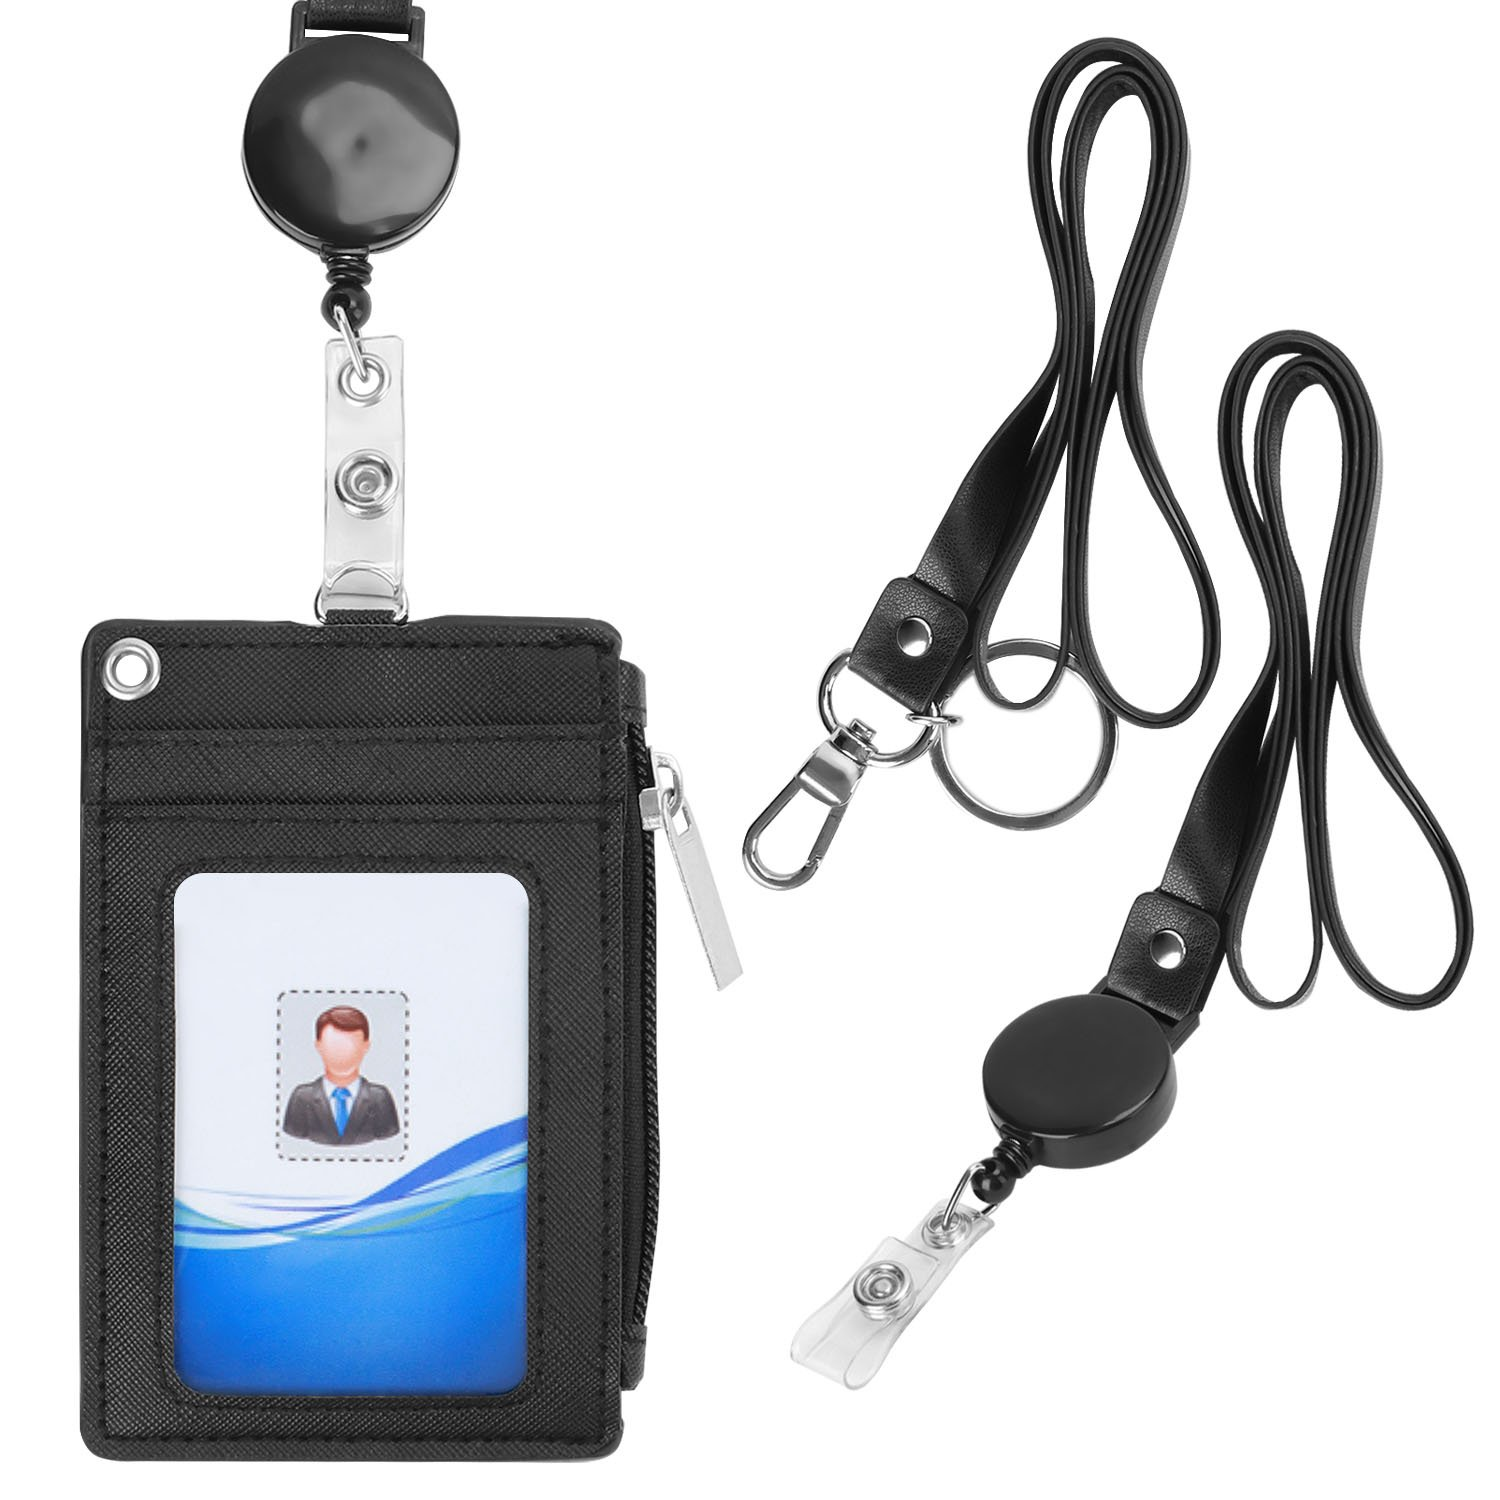 Badge Holder with Lanyards, HQD PU Leather ID Badge Card Holder Wallet with 5 Slots, 2 Neck Lanyards(1 retractable), 1 Side RFID Blocking Zipper Pocket - Black/Pilot certification/School ID/Offices ID